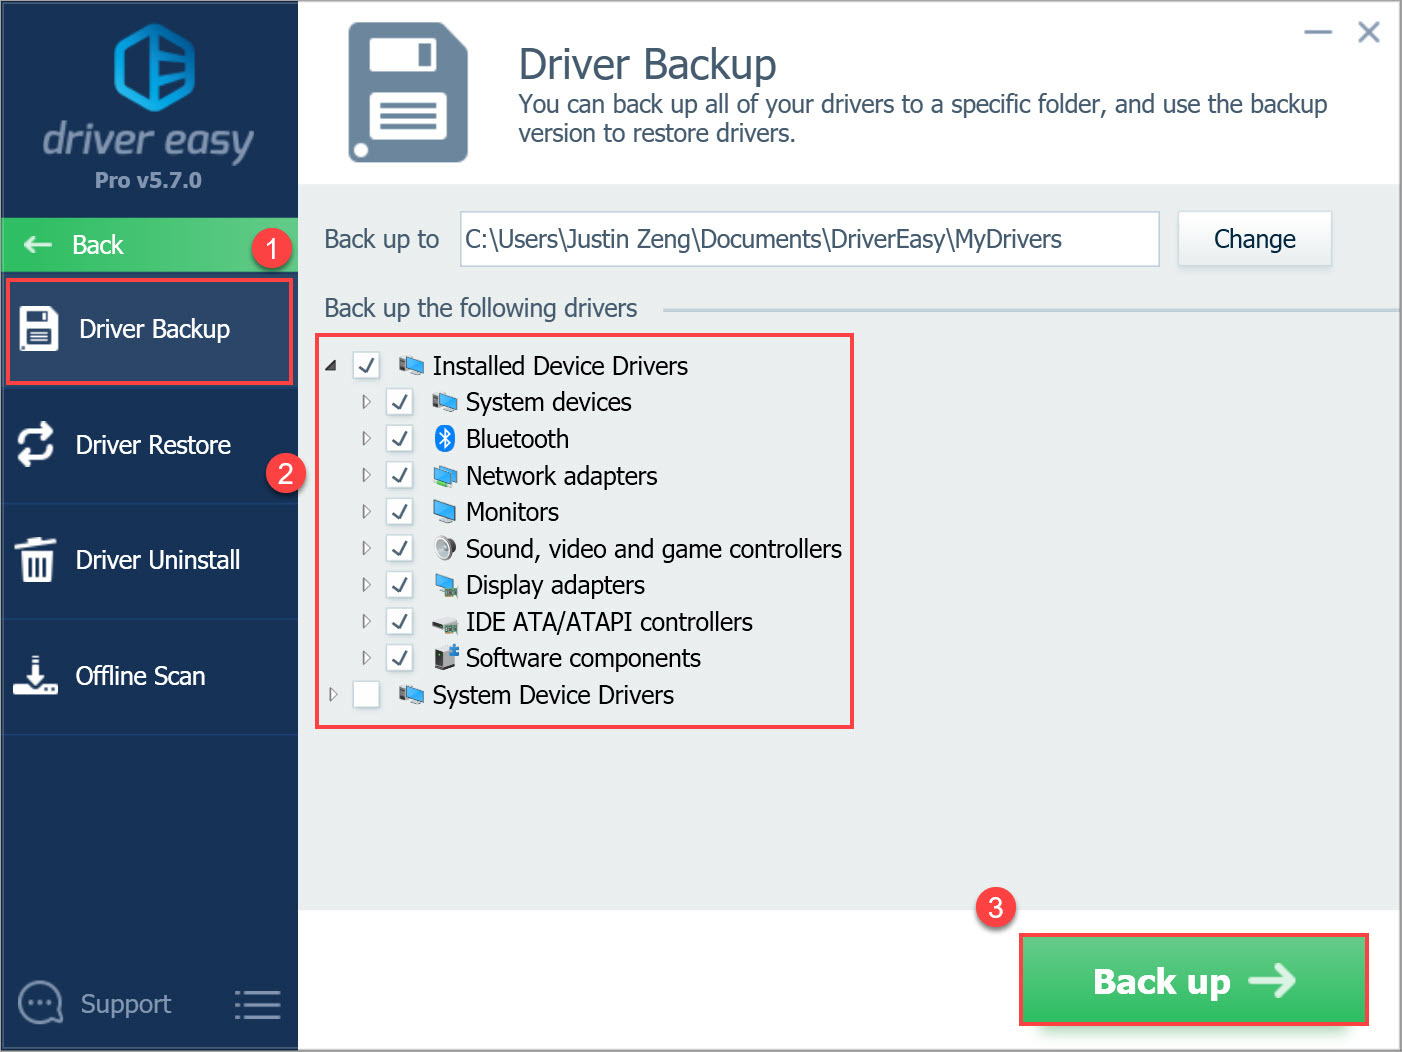 Driver Easy Pro Driver Backup